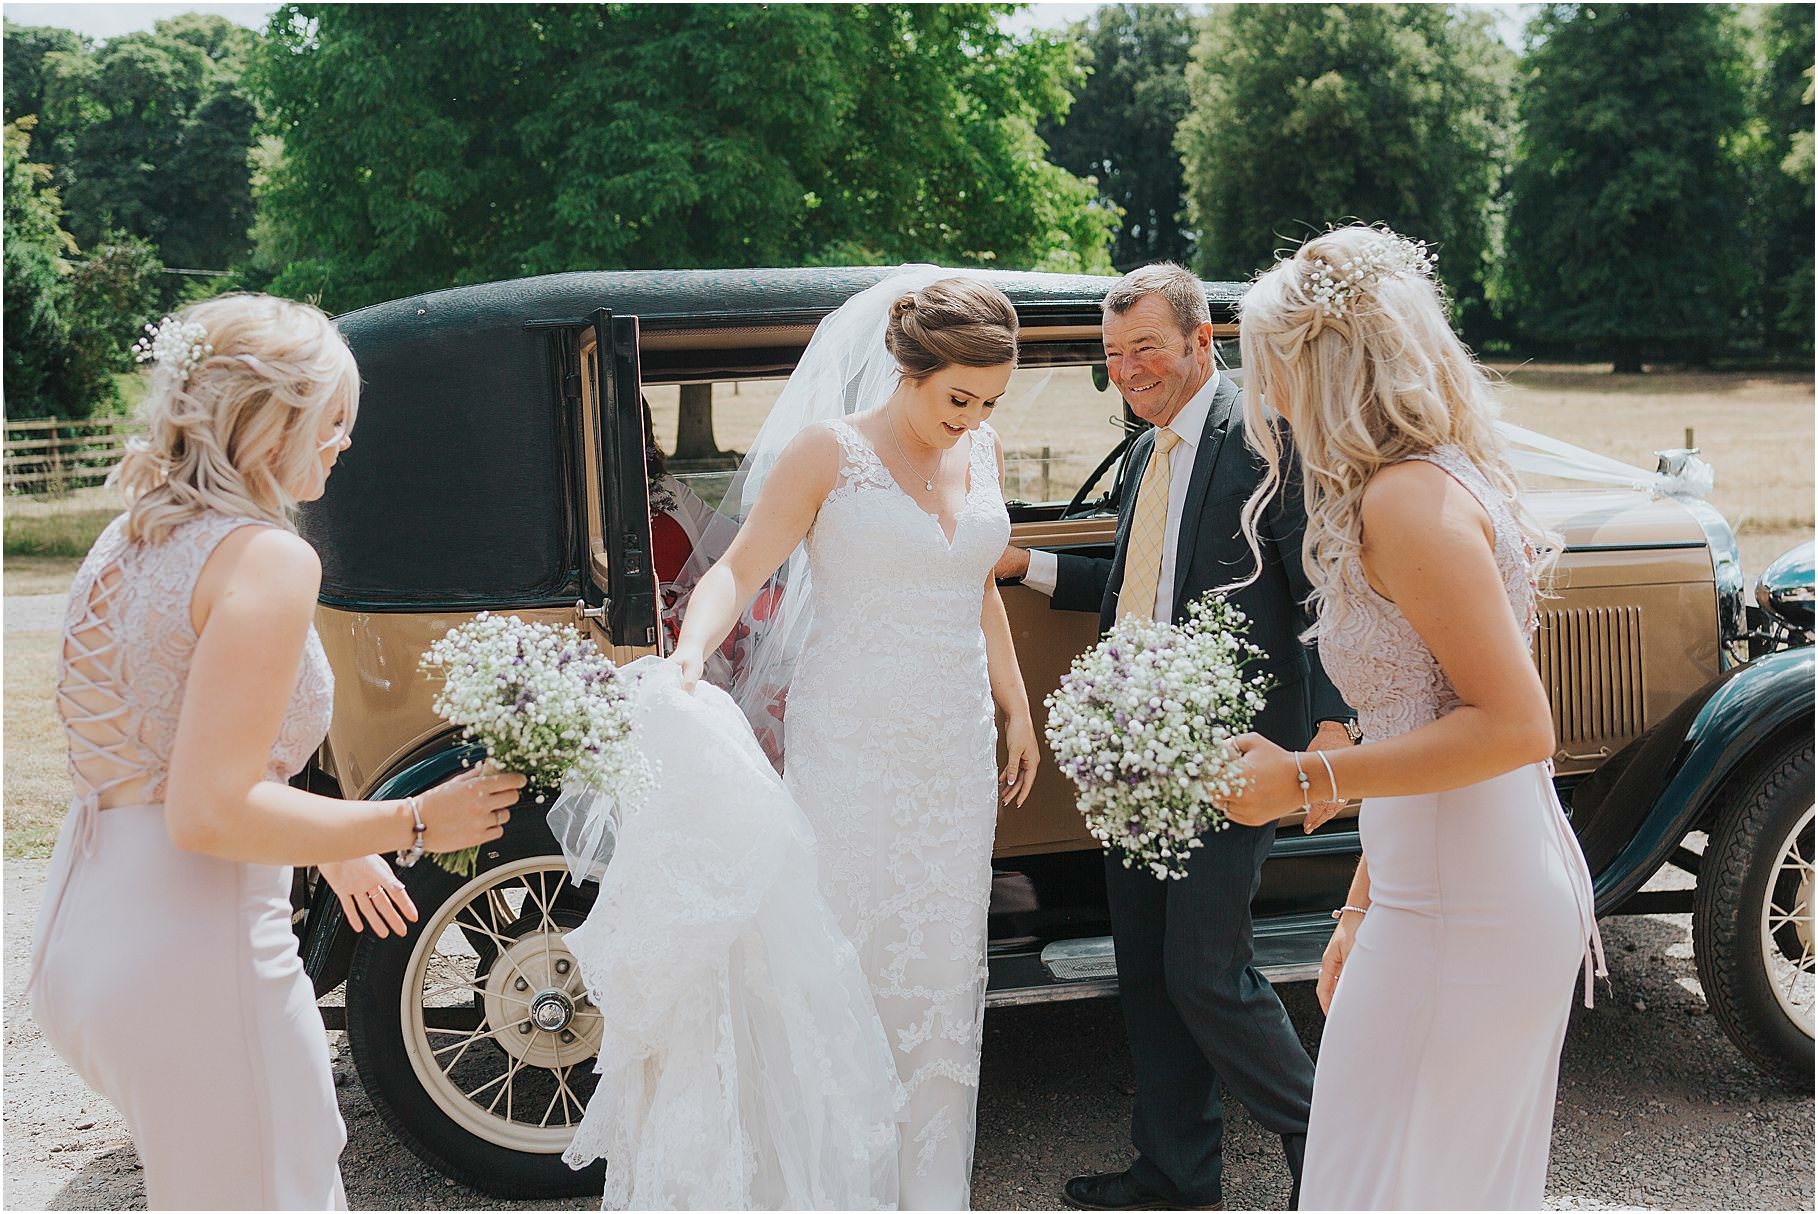 Rutland Weddings Exton Hall Exton Oakham Rutland Water Photographer 1042 - Mr and Mrs Barker // RUTLAND WEDDING